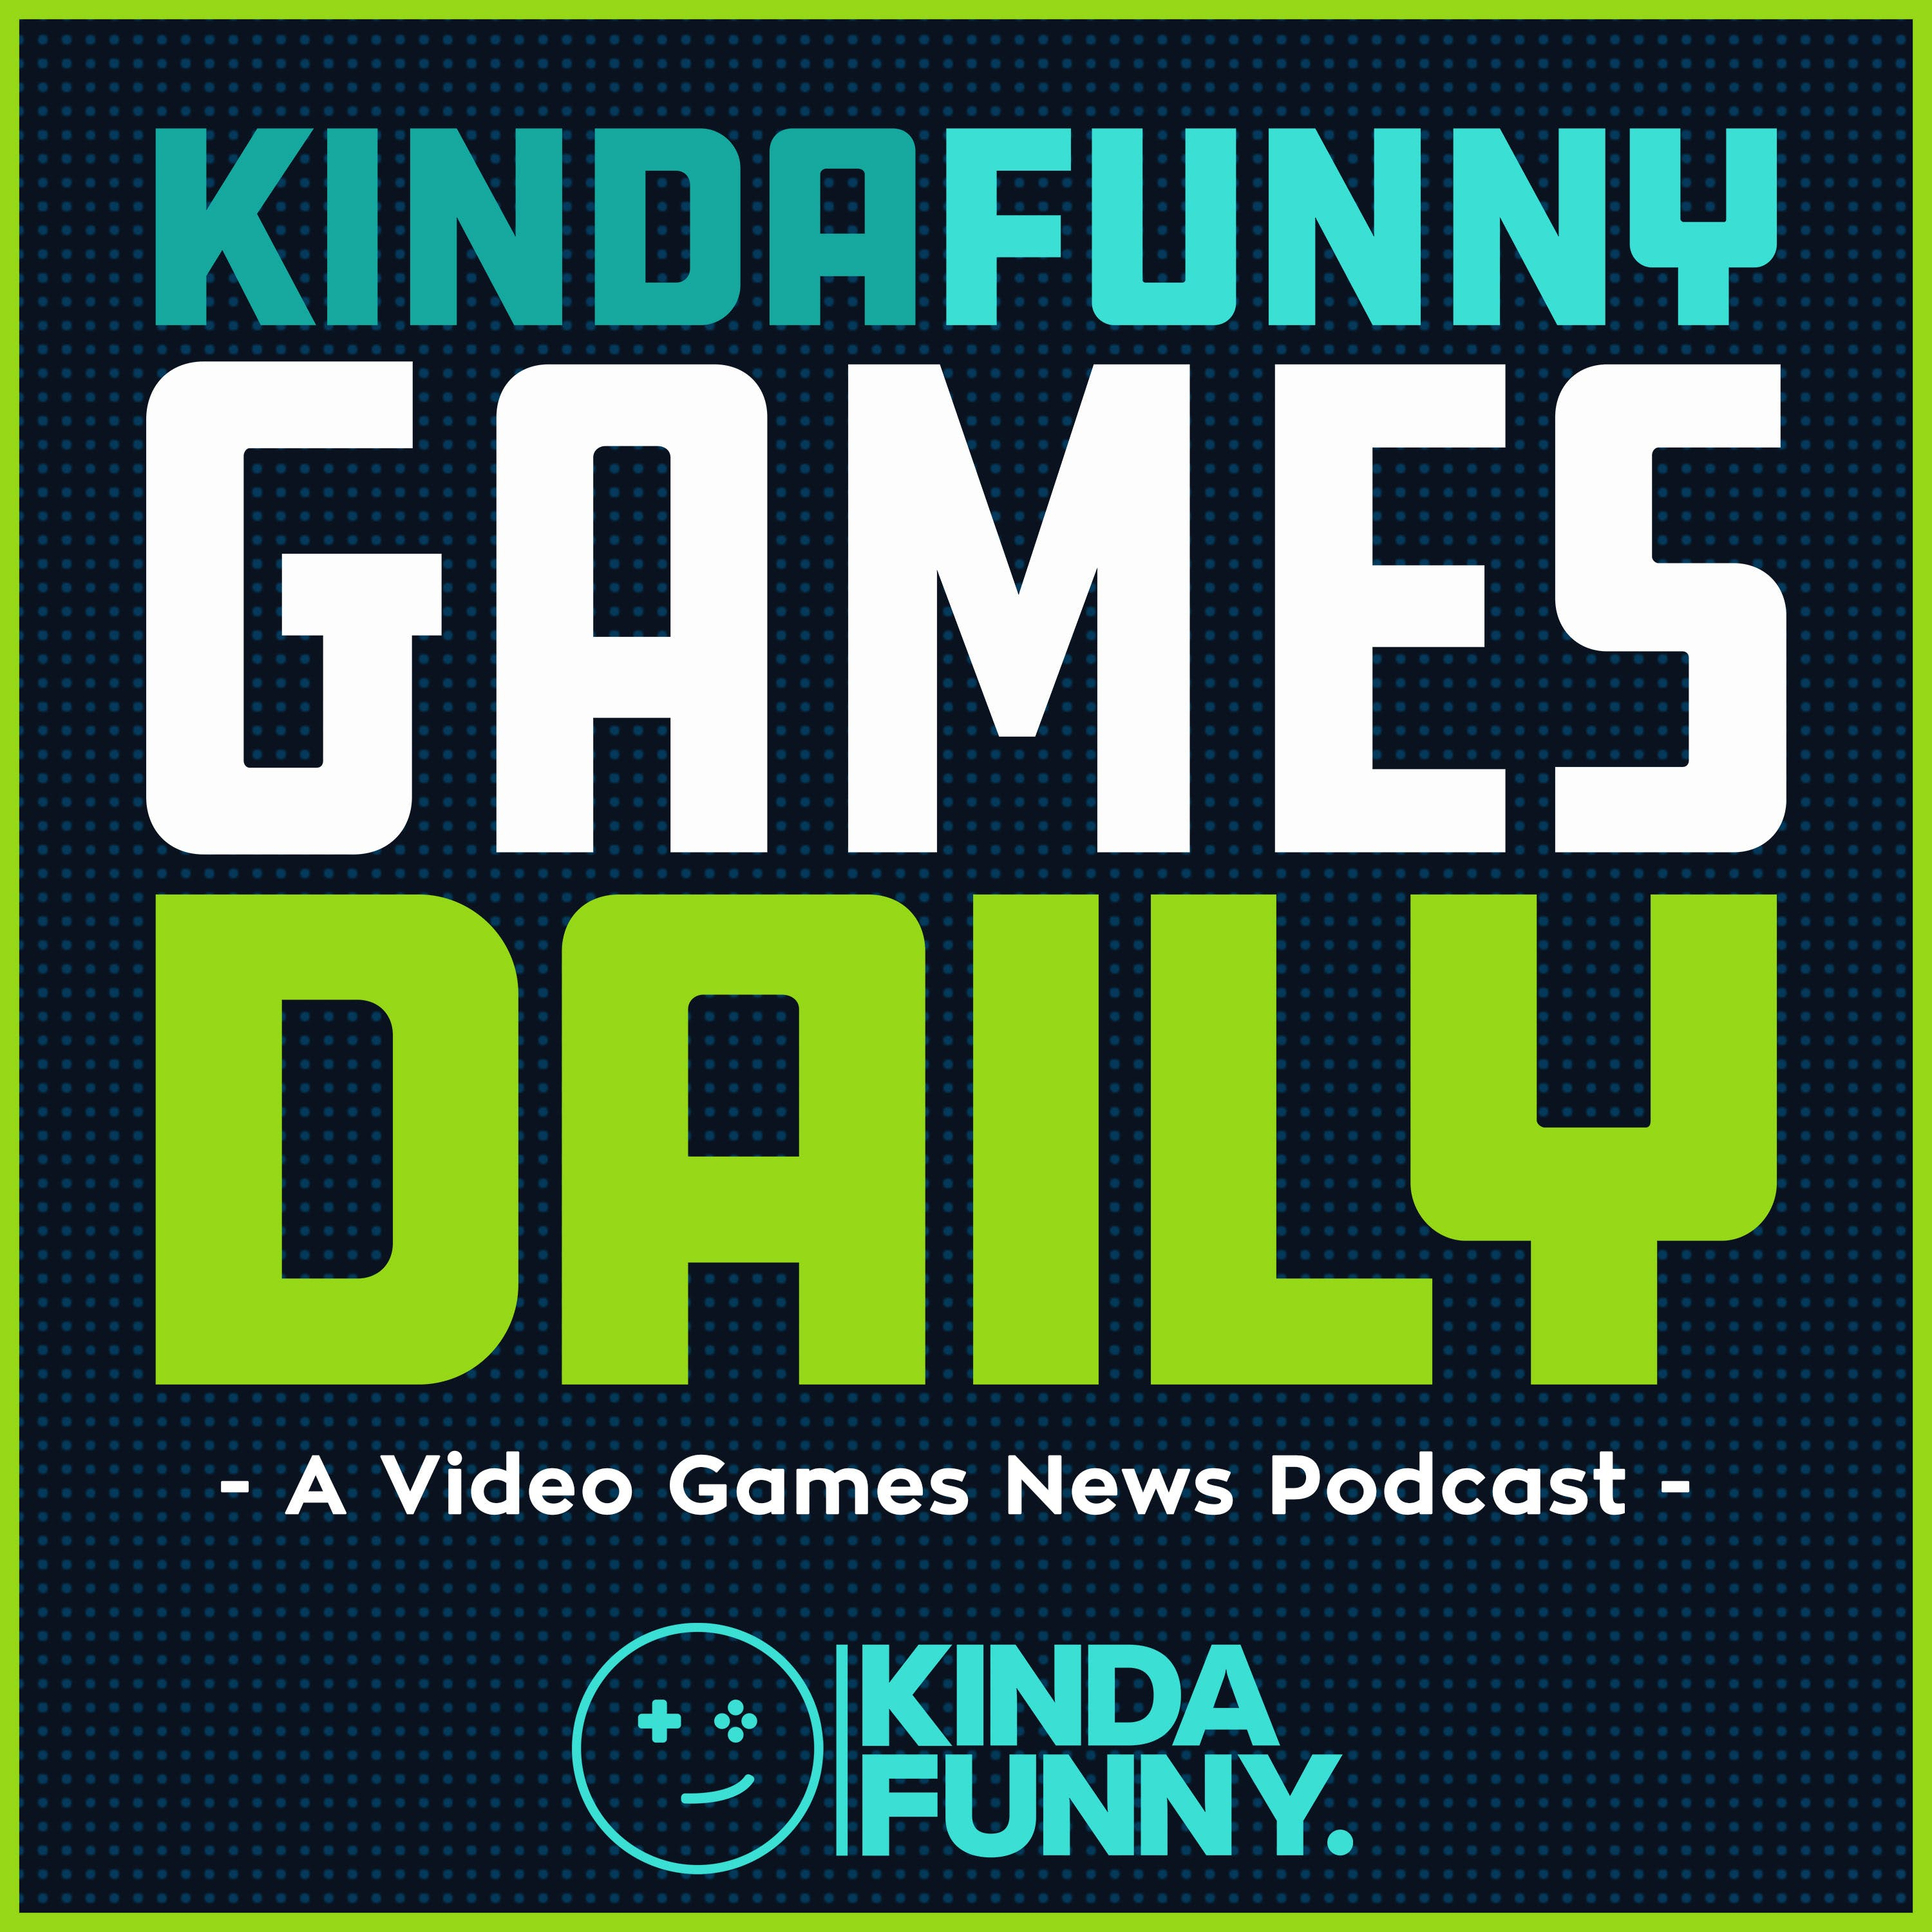 Let's Talk About IGN and Palestine - Kinda Funny Games Daily 05.17.21